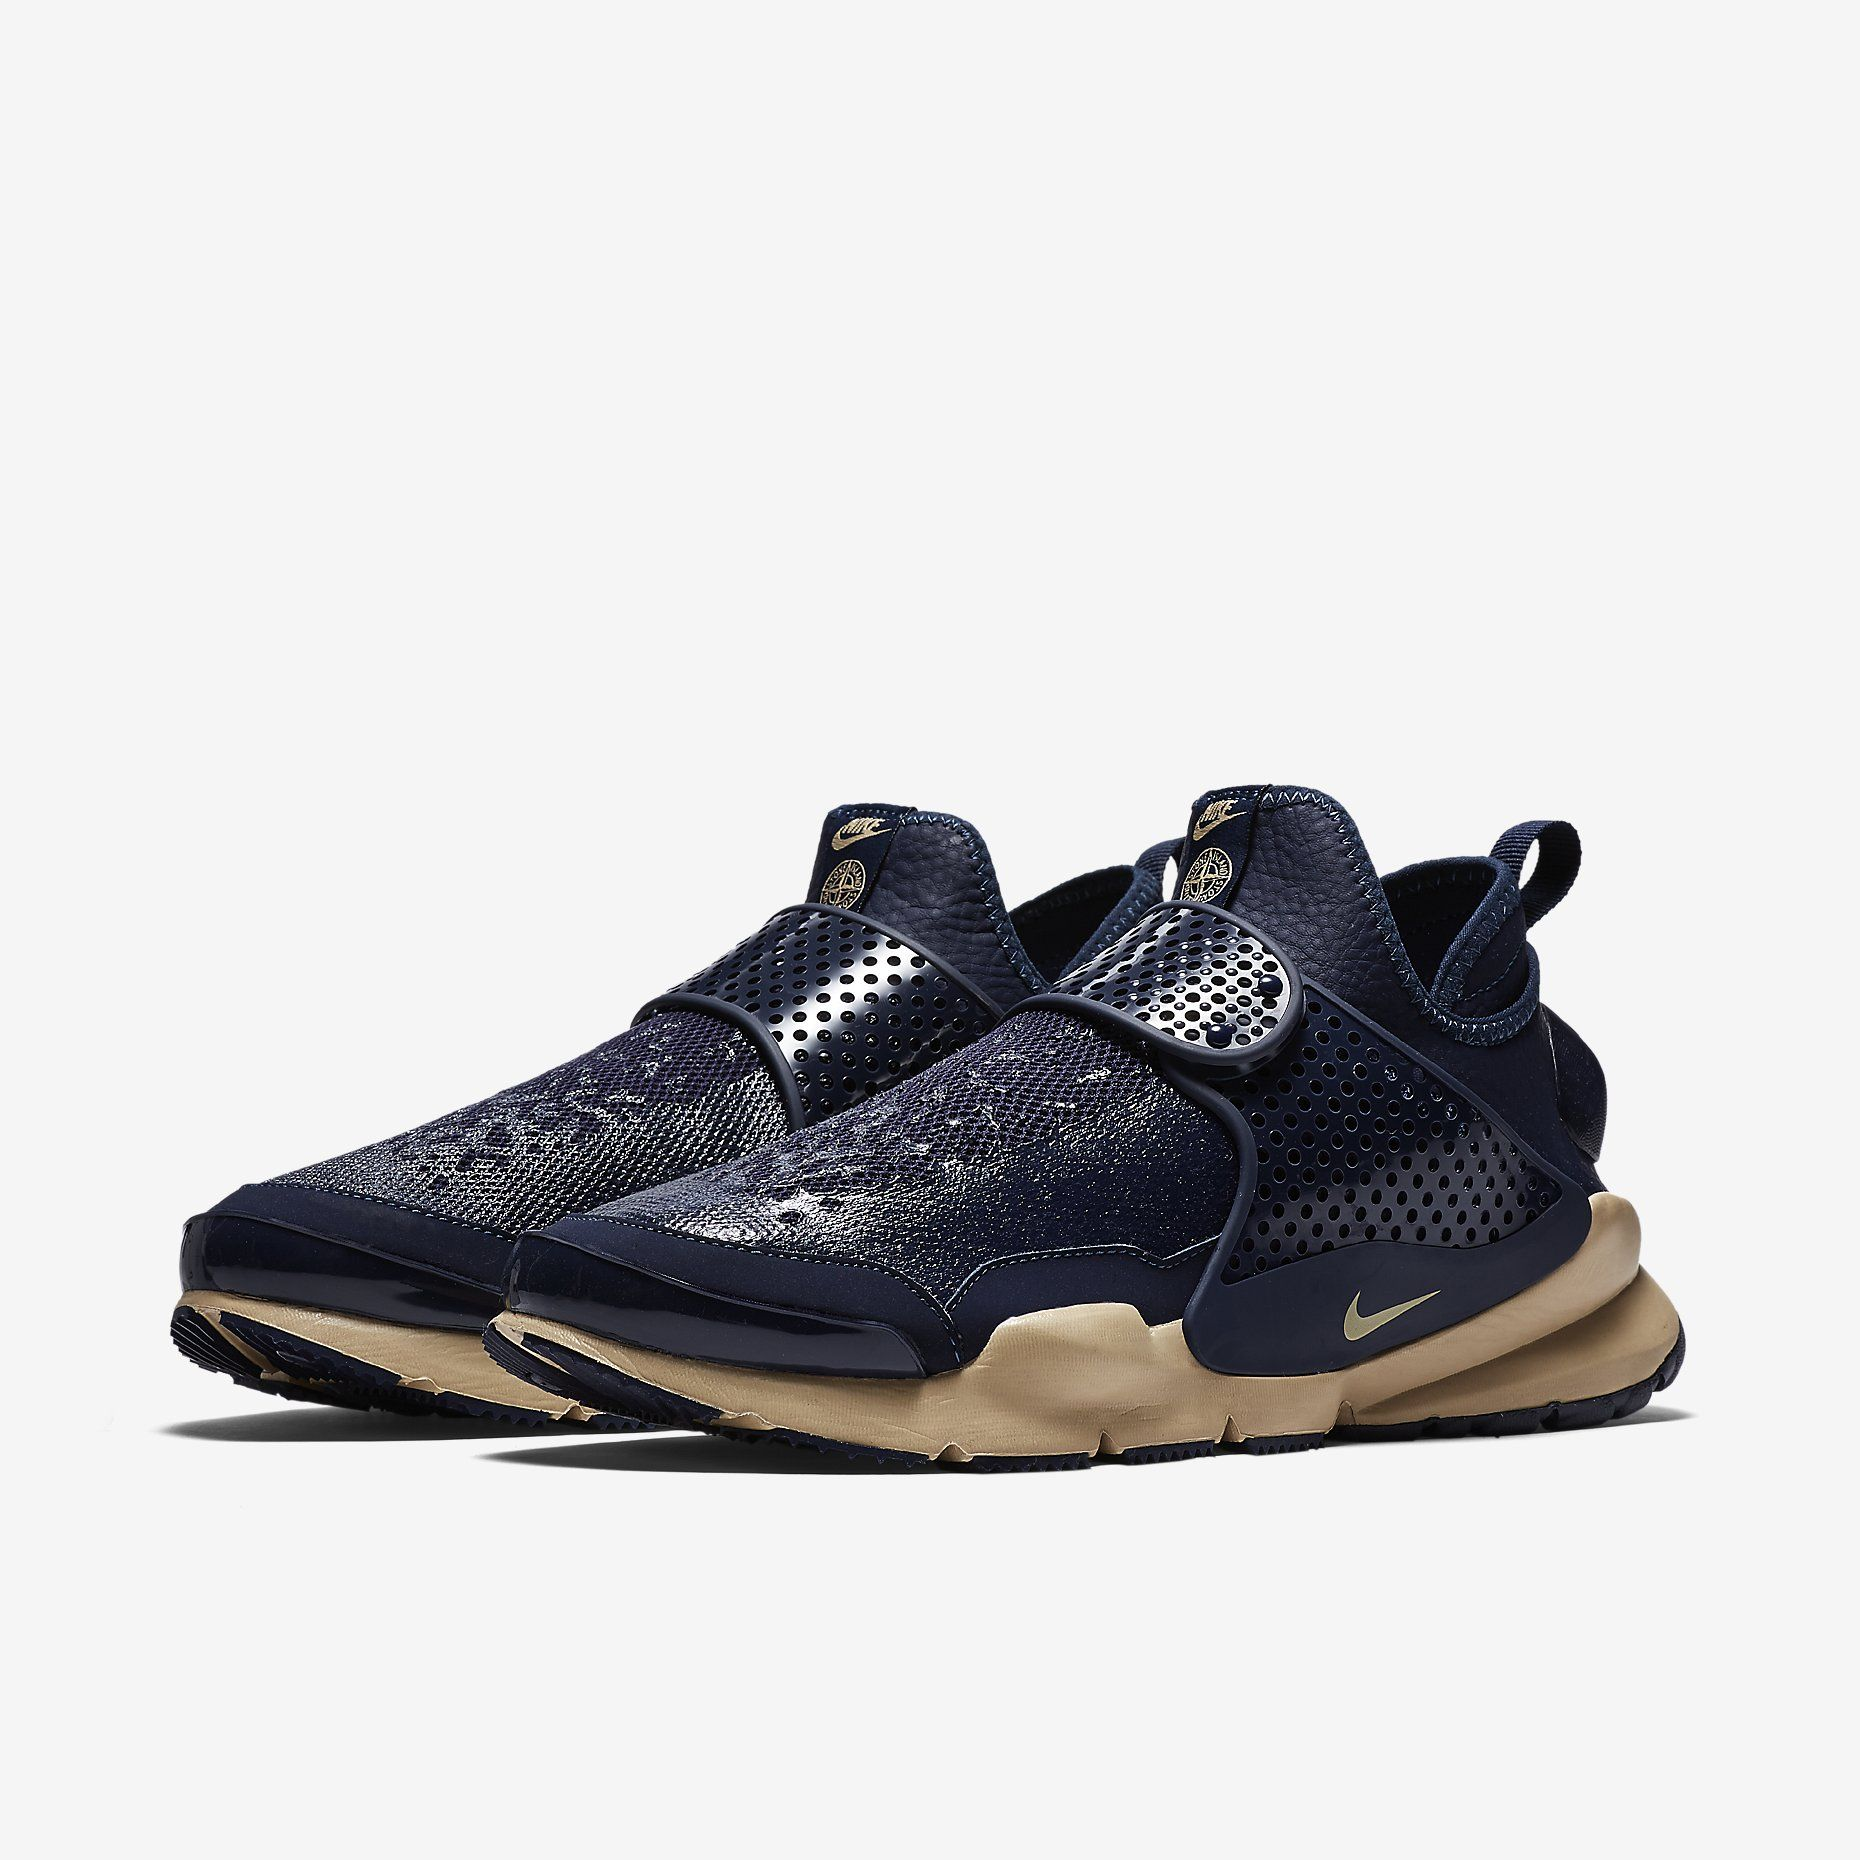 Very Goods | NikeLab x Stone Island Sock Dart Mid SP Men's Shoe. Nike.